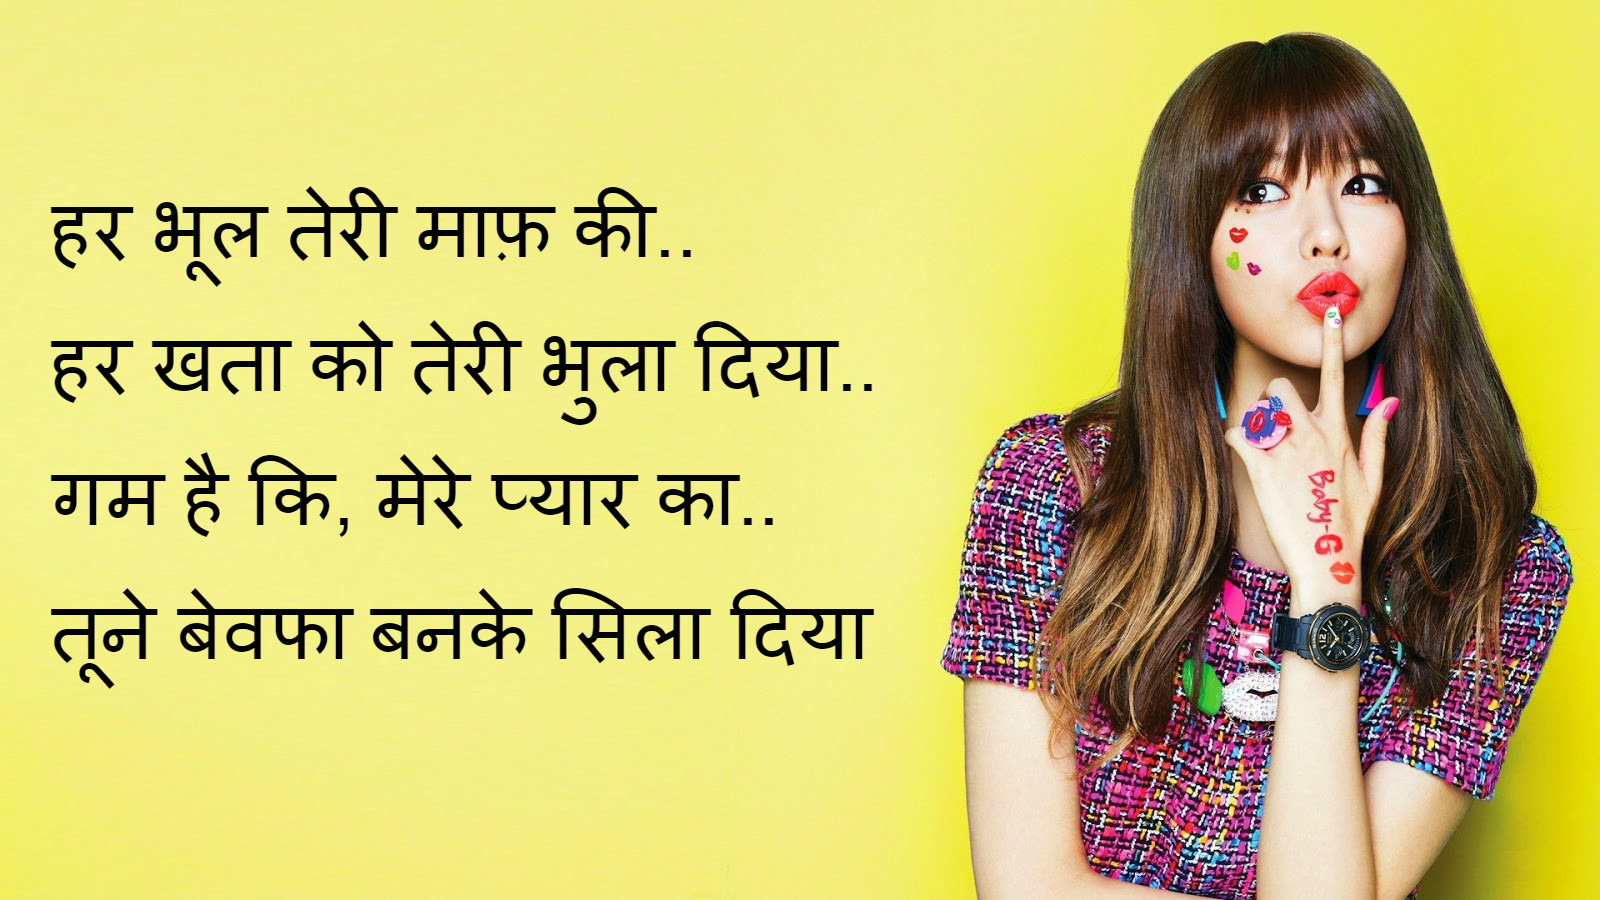 Wallpaper download jokes - Bewafa Shayari Image Wallpaper Free Download Photos